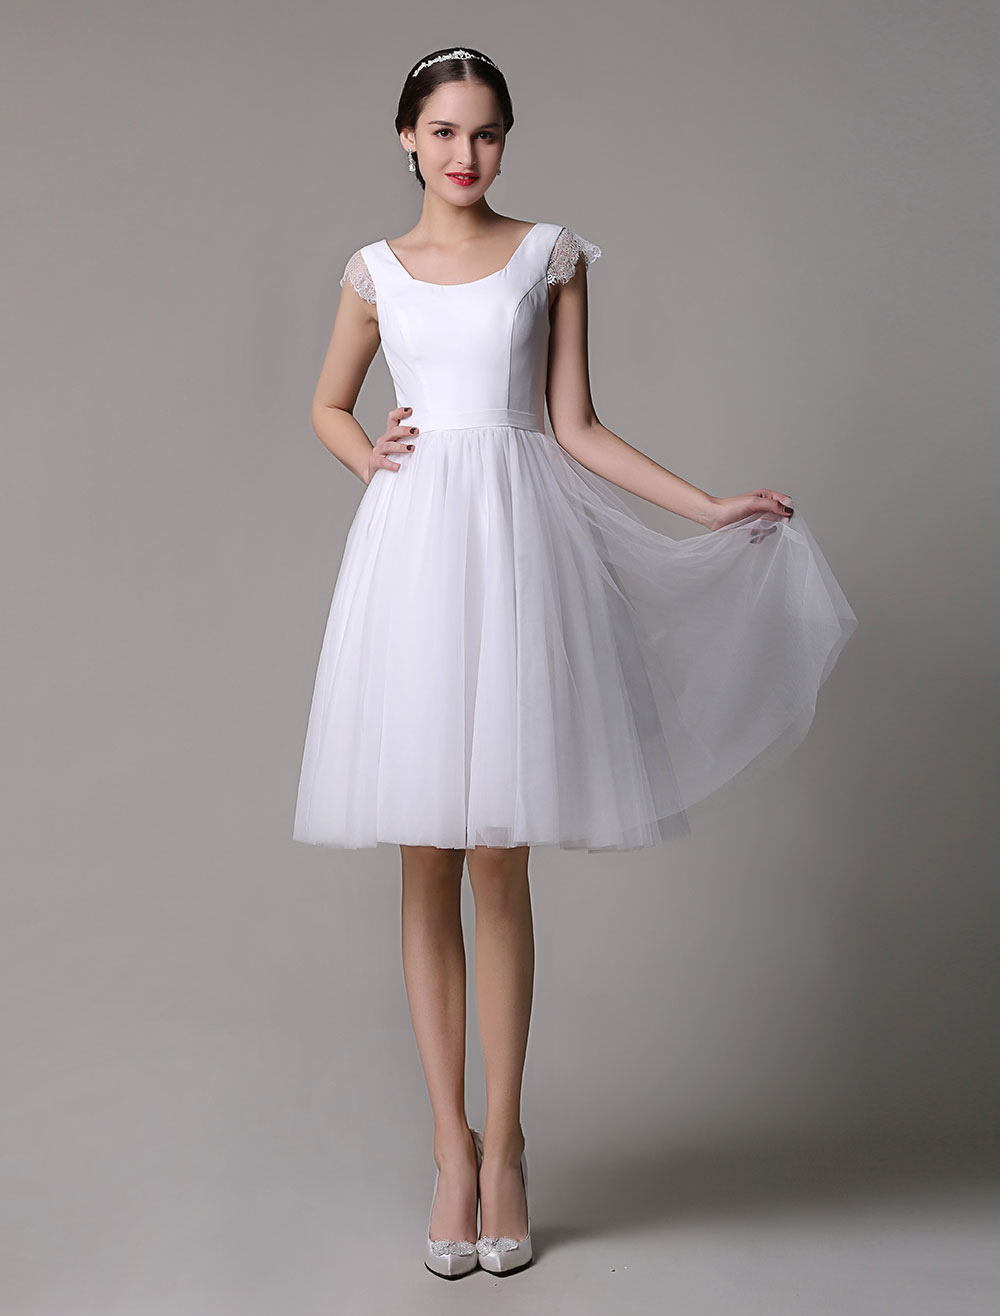 20b6c5bc0aff Simple Wedding Dresses Tulle Scoop Neck Knee Length Short Bridal Dress With  Lace Cap Sleeves - Milanoo.com